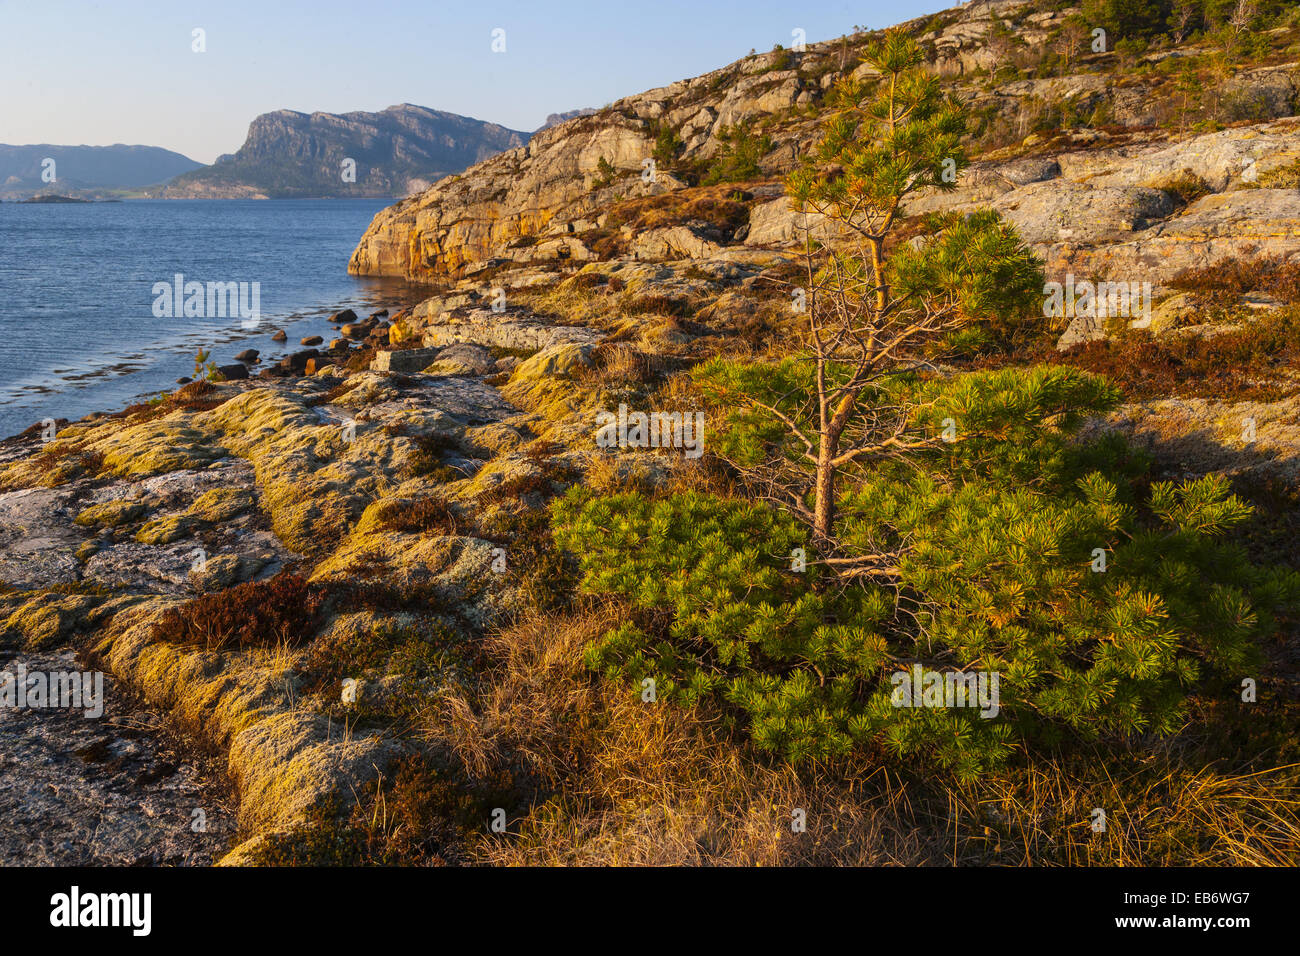 Flatanger, Nord-Trondelag, Norway, Europe. - Stock Image